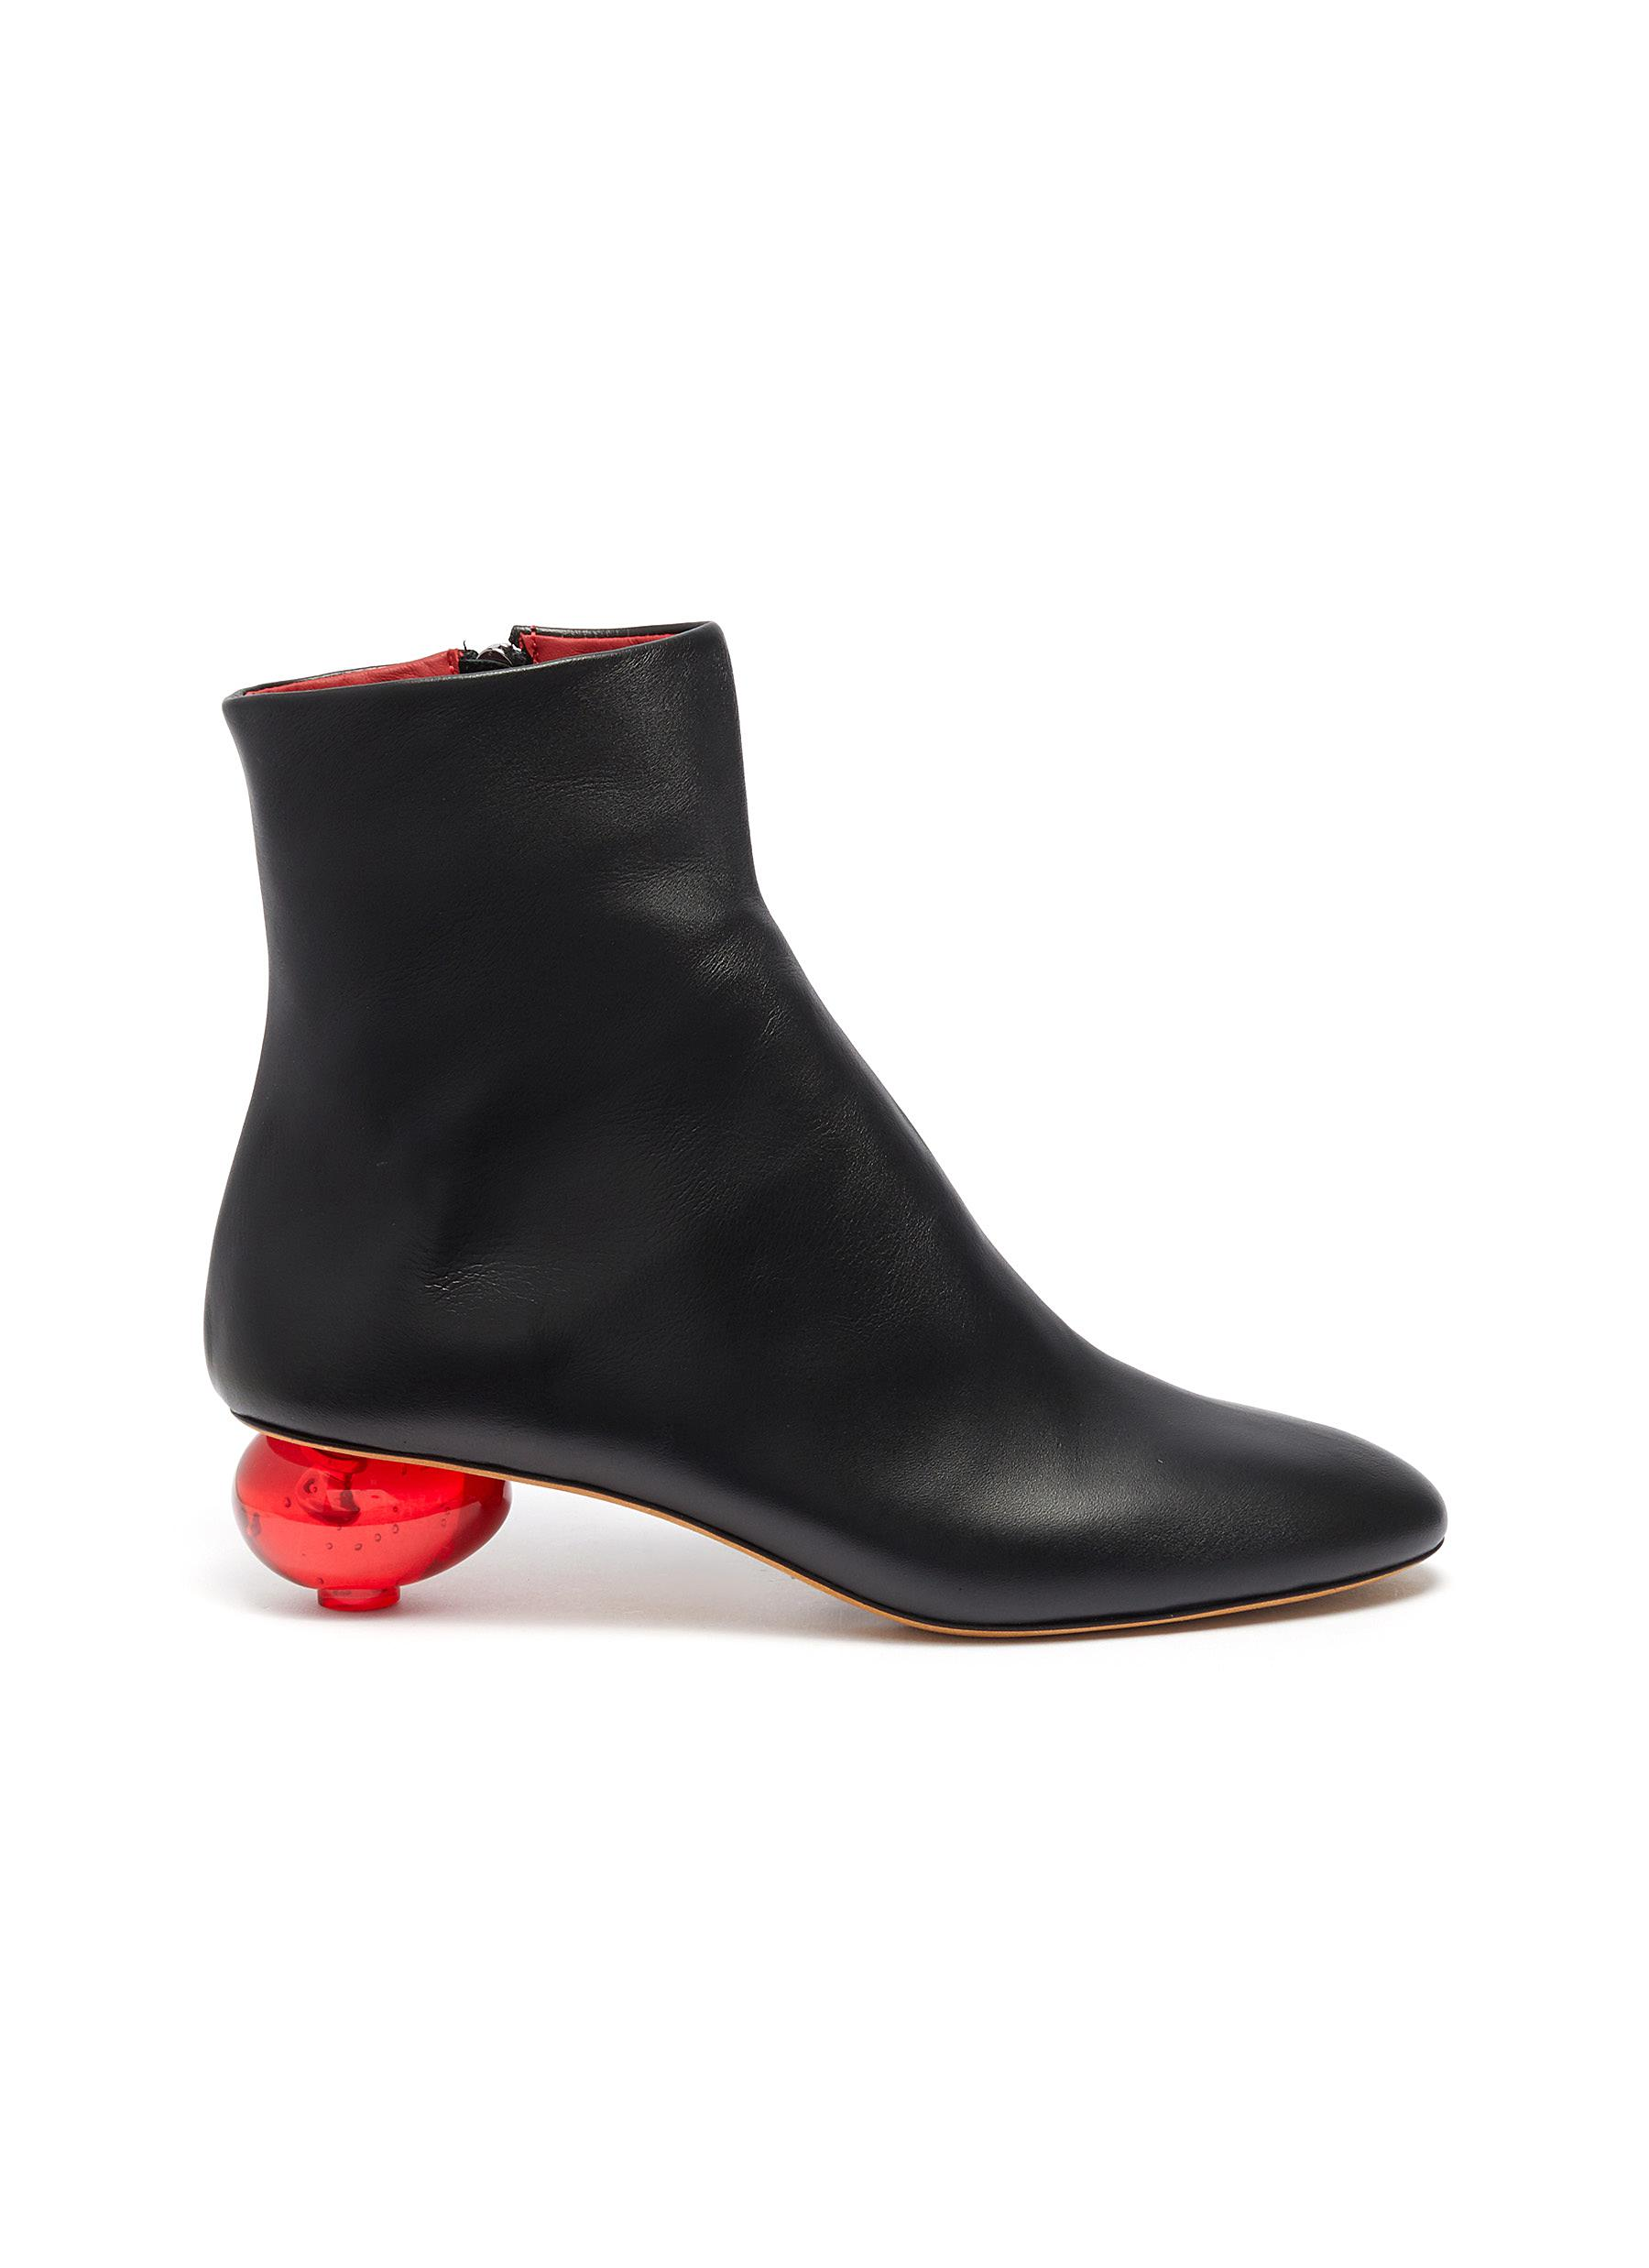 Egg heel leather ankle boots by Gray Matters